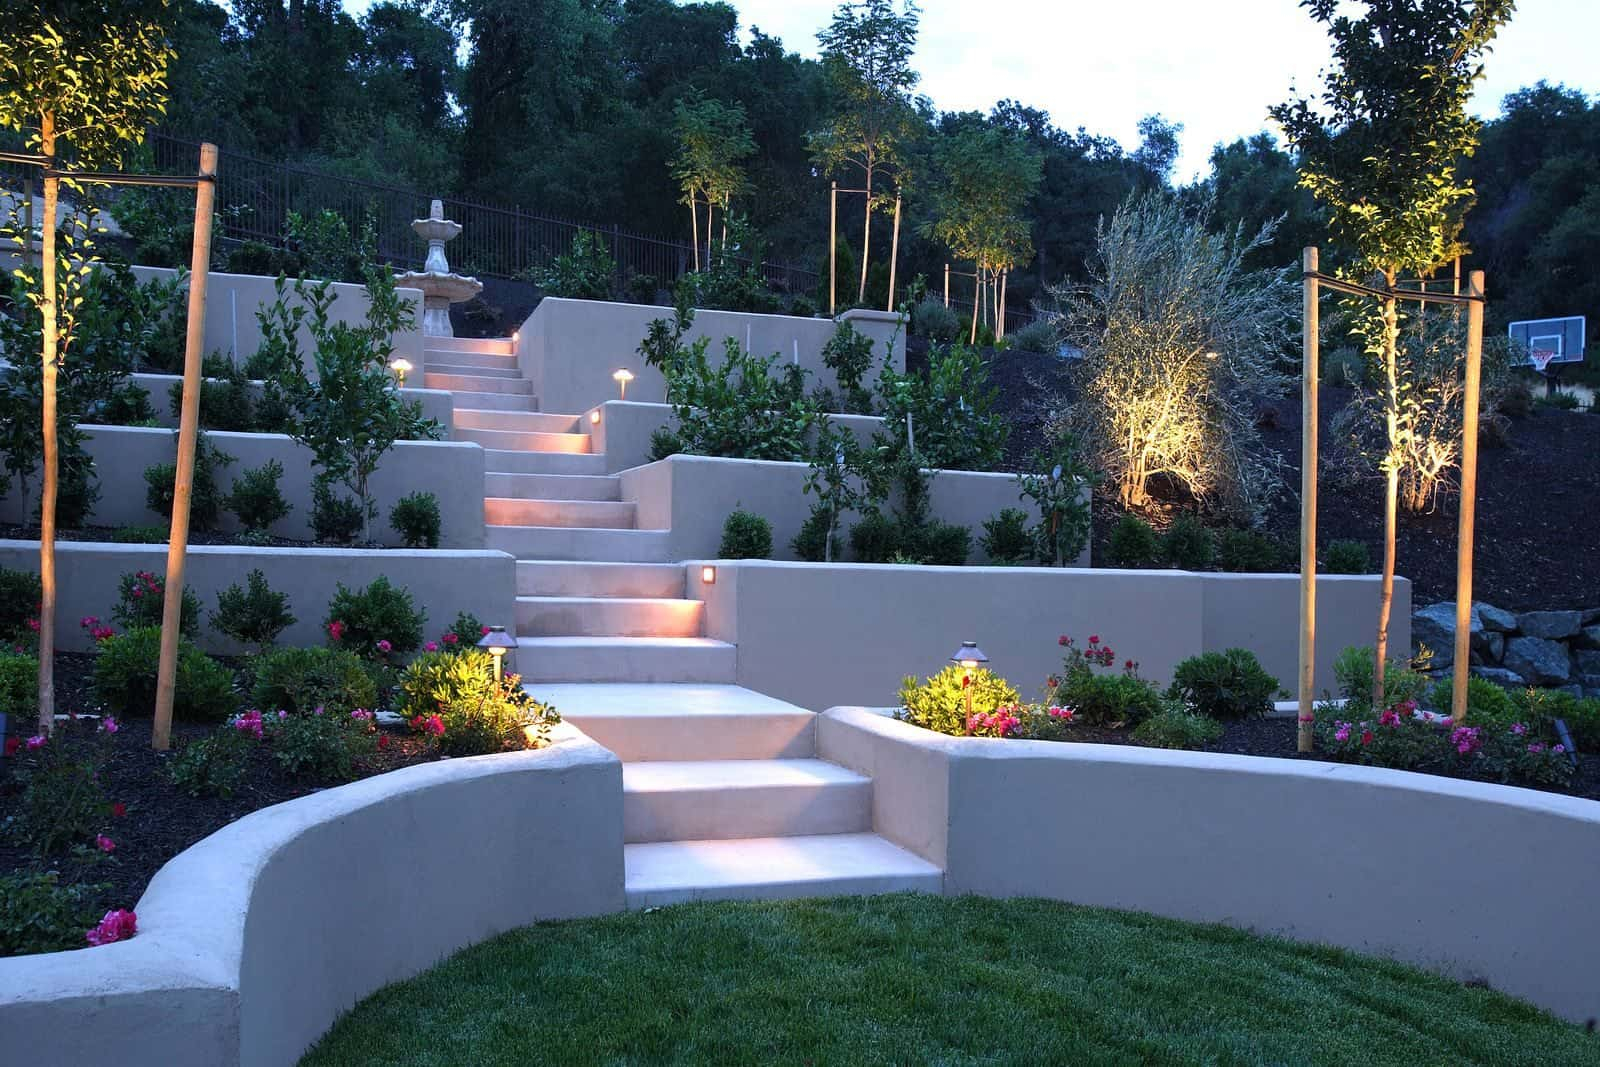 Concrete Sloped Backyard Landscaping Amazing Sloped Backyard within 15 Some of the Coolest Tricks of How to Craft Sloped Backyard Landscaping